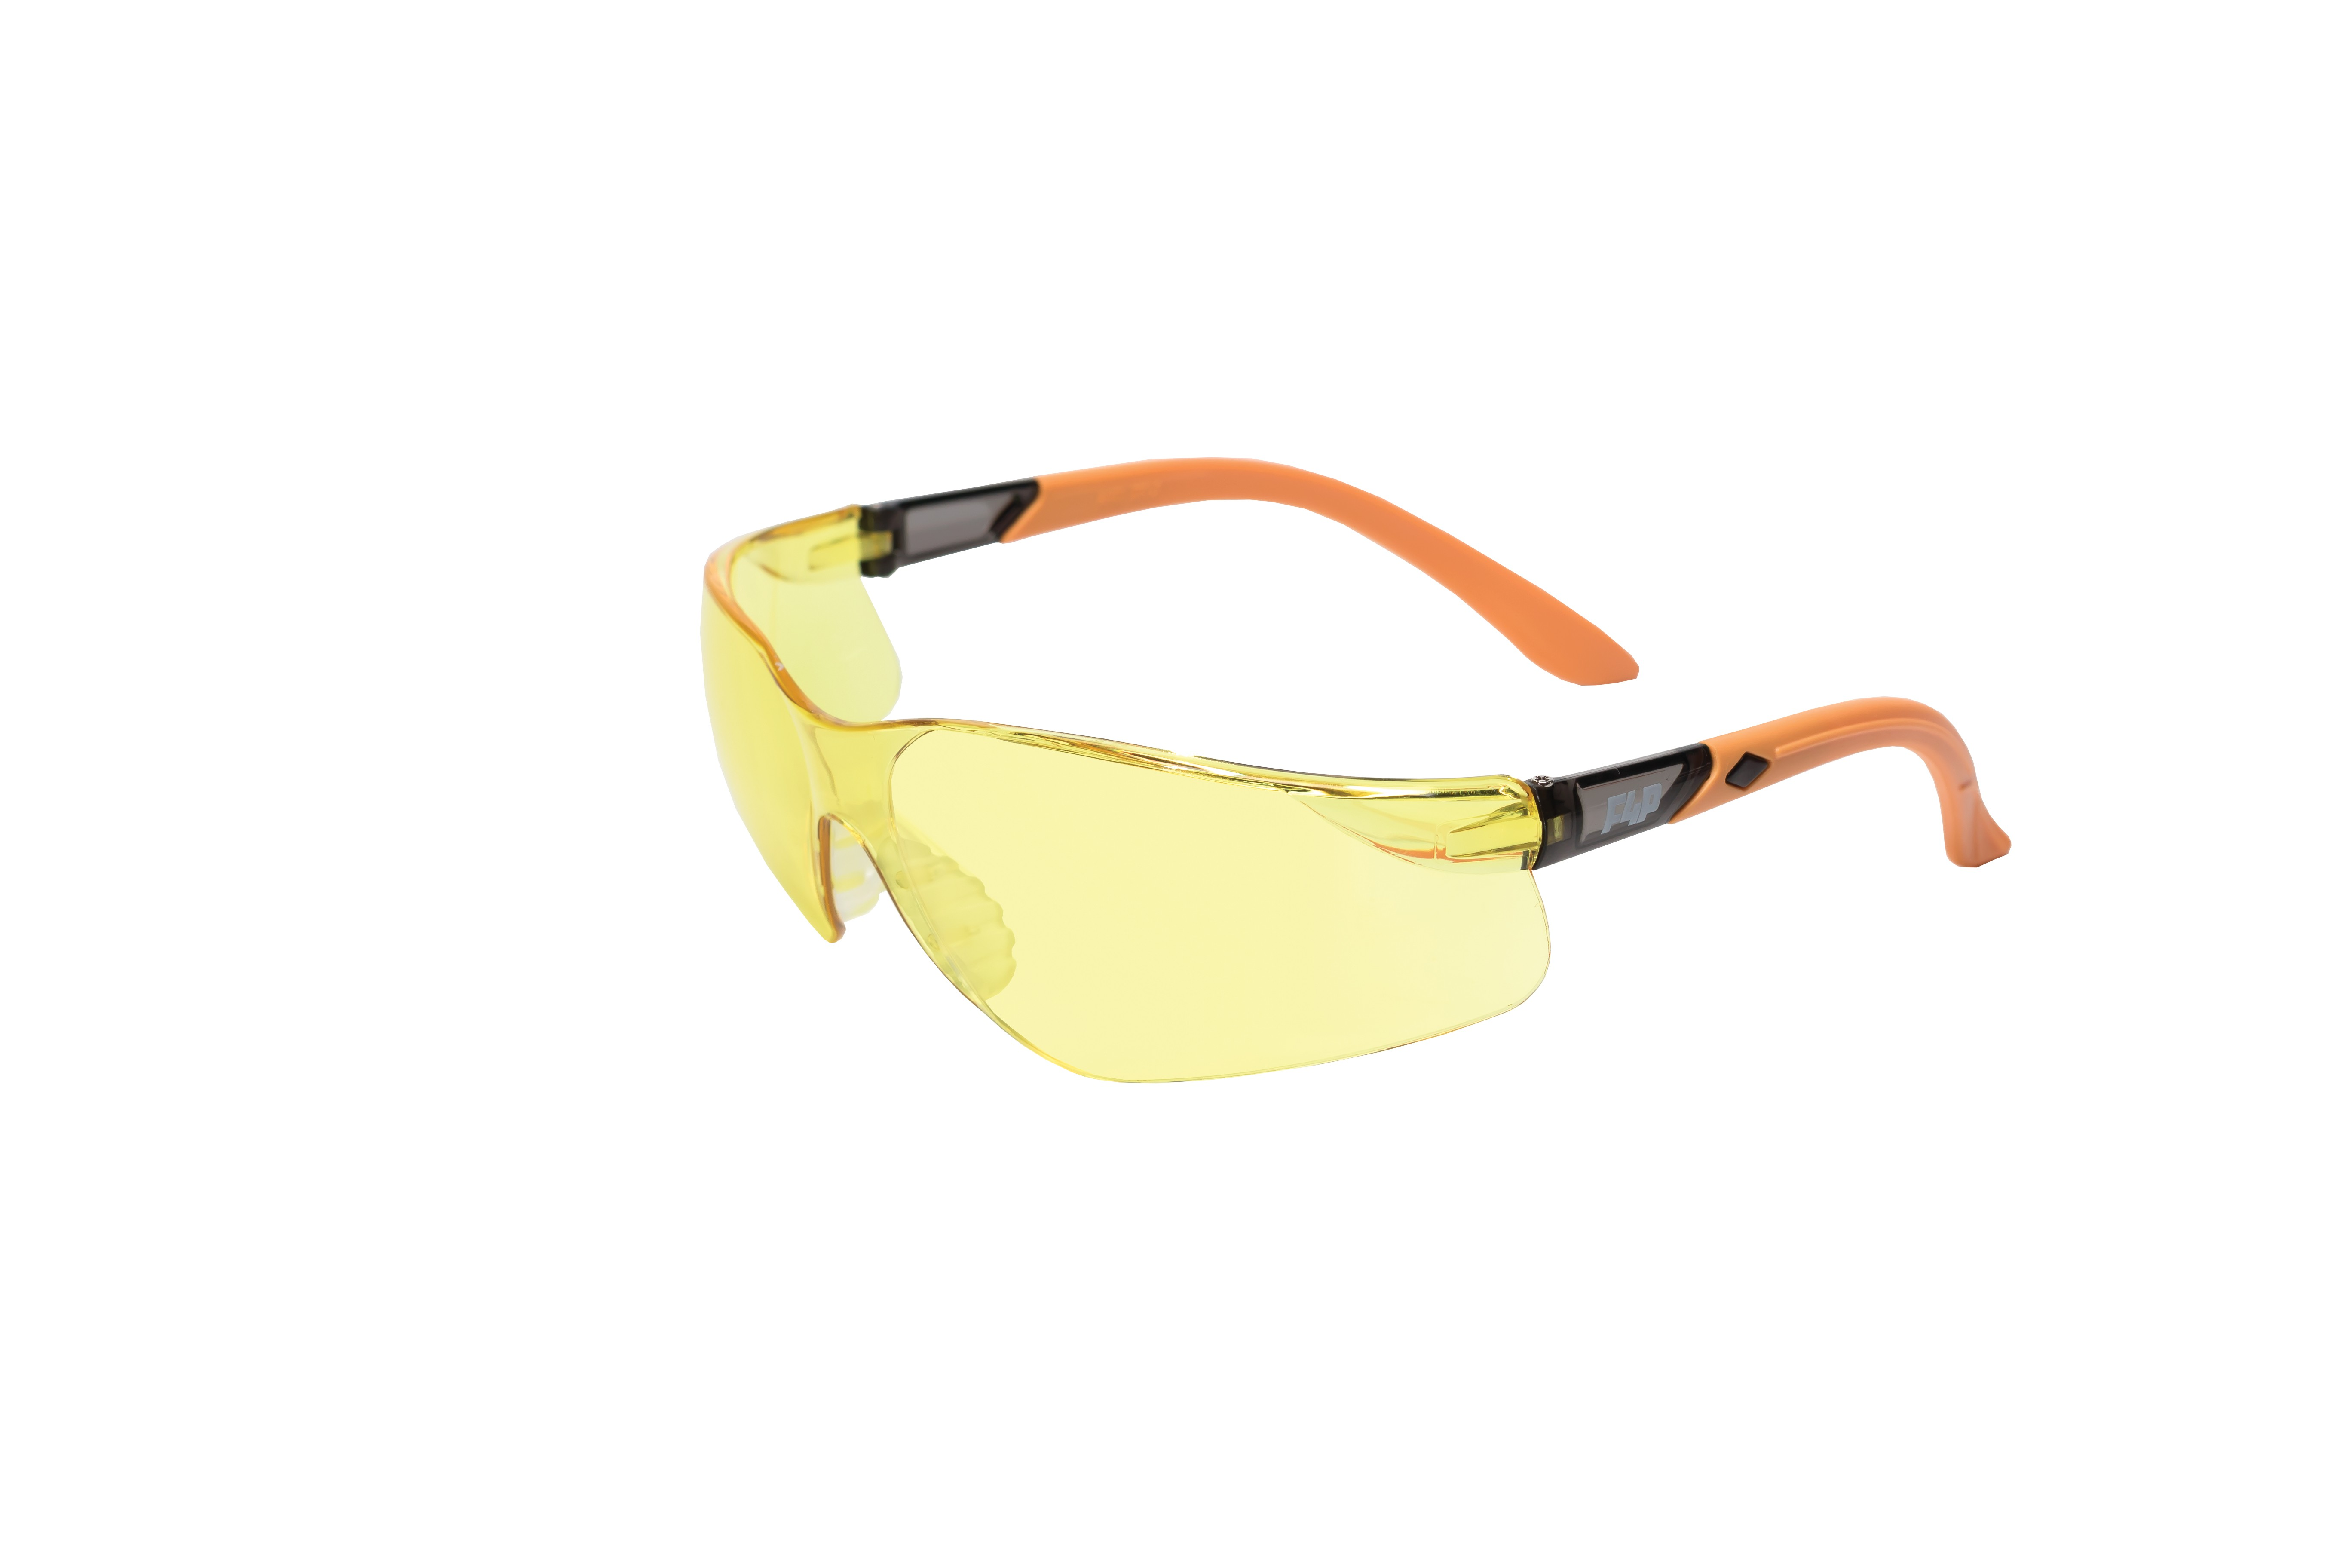 F4p Anti Fog Safety Glasses With Yellow Lens Glasses